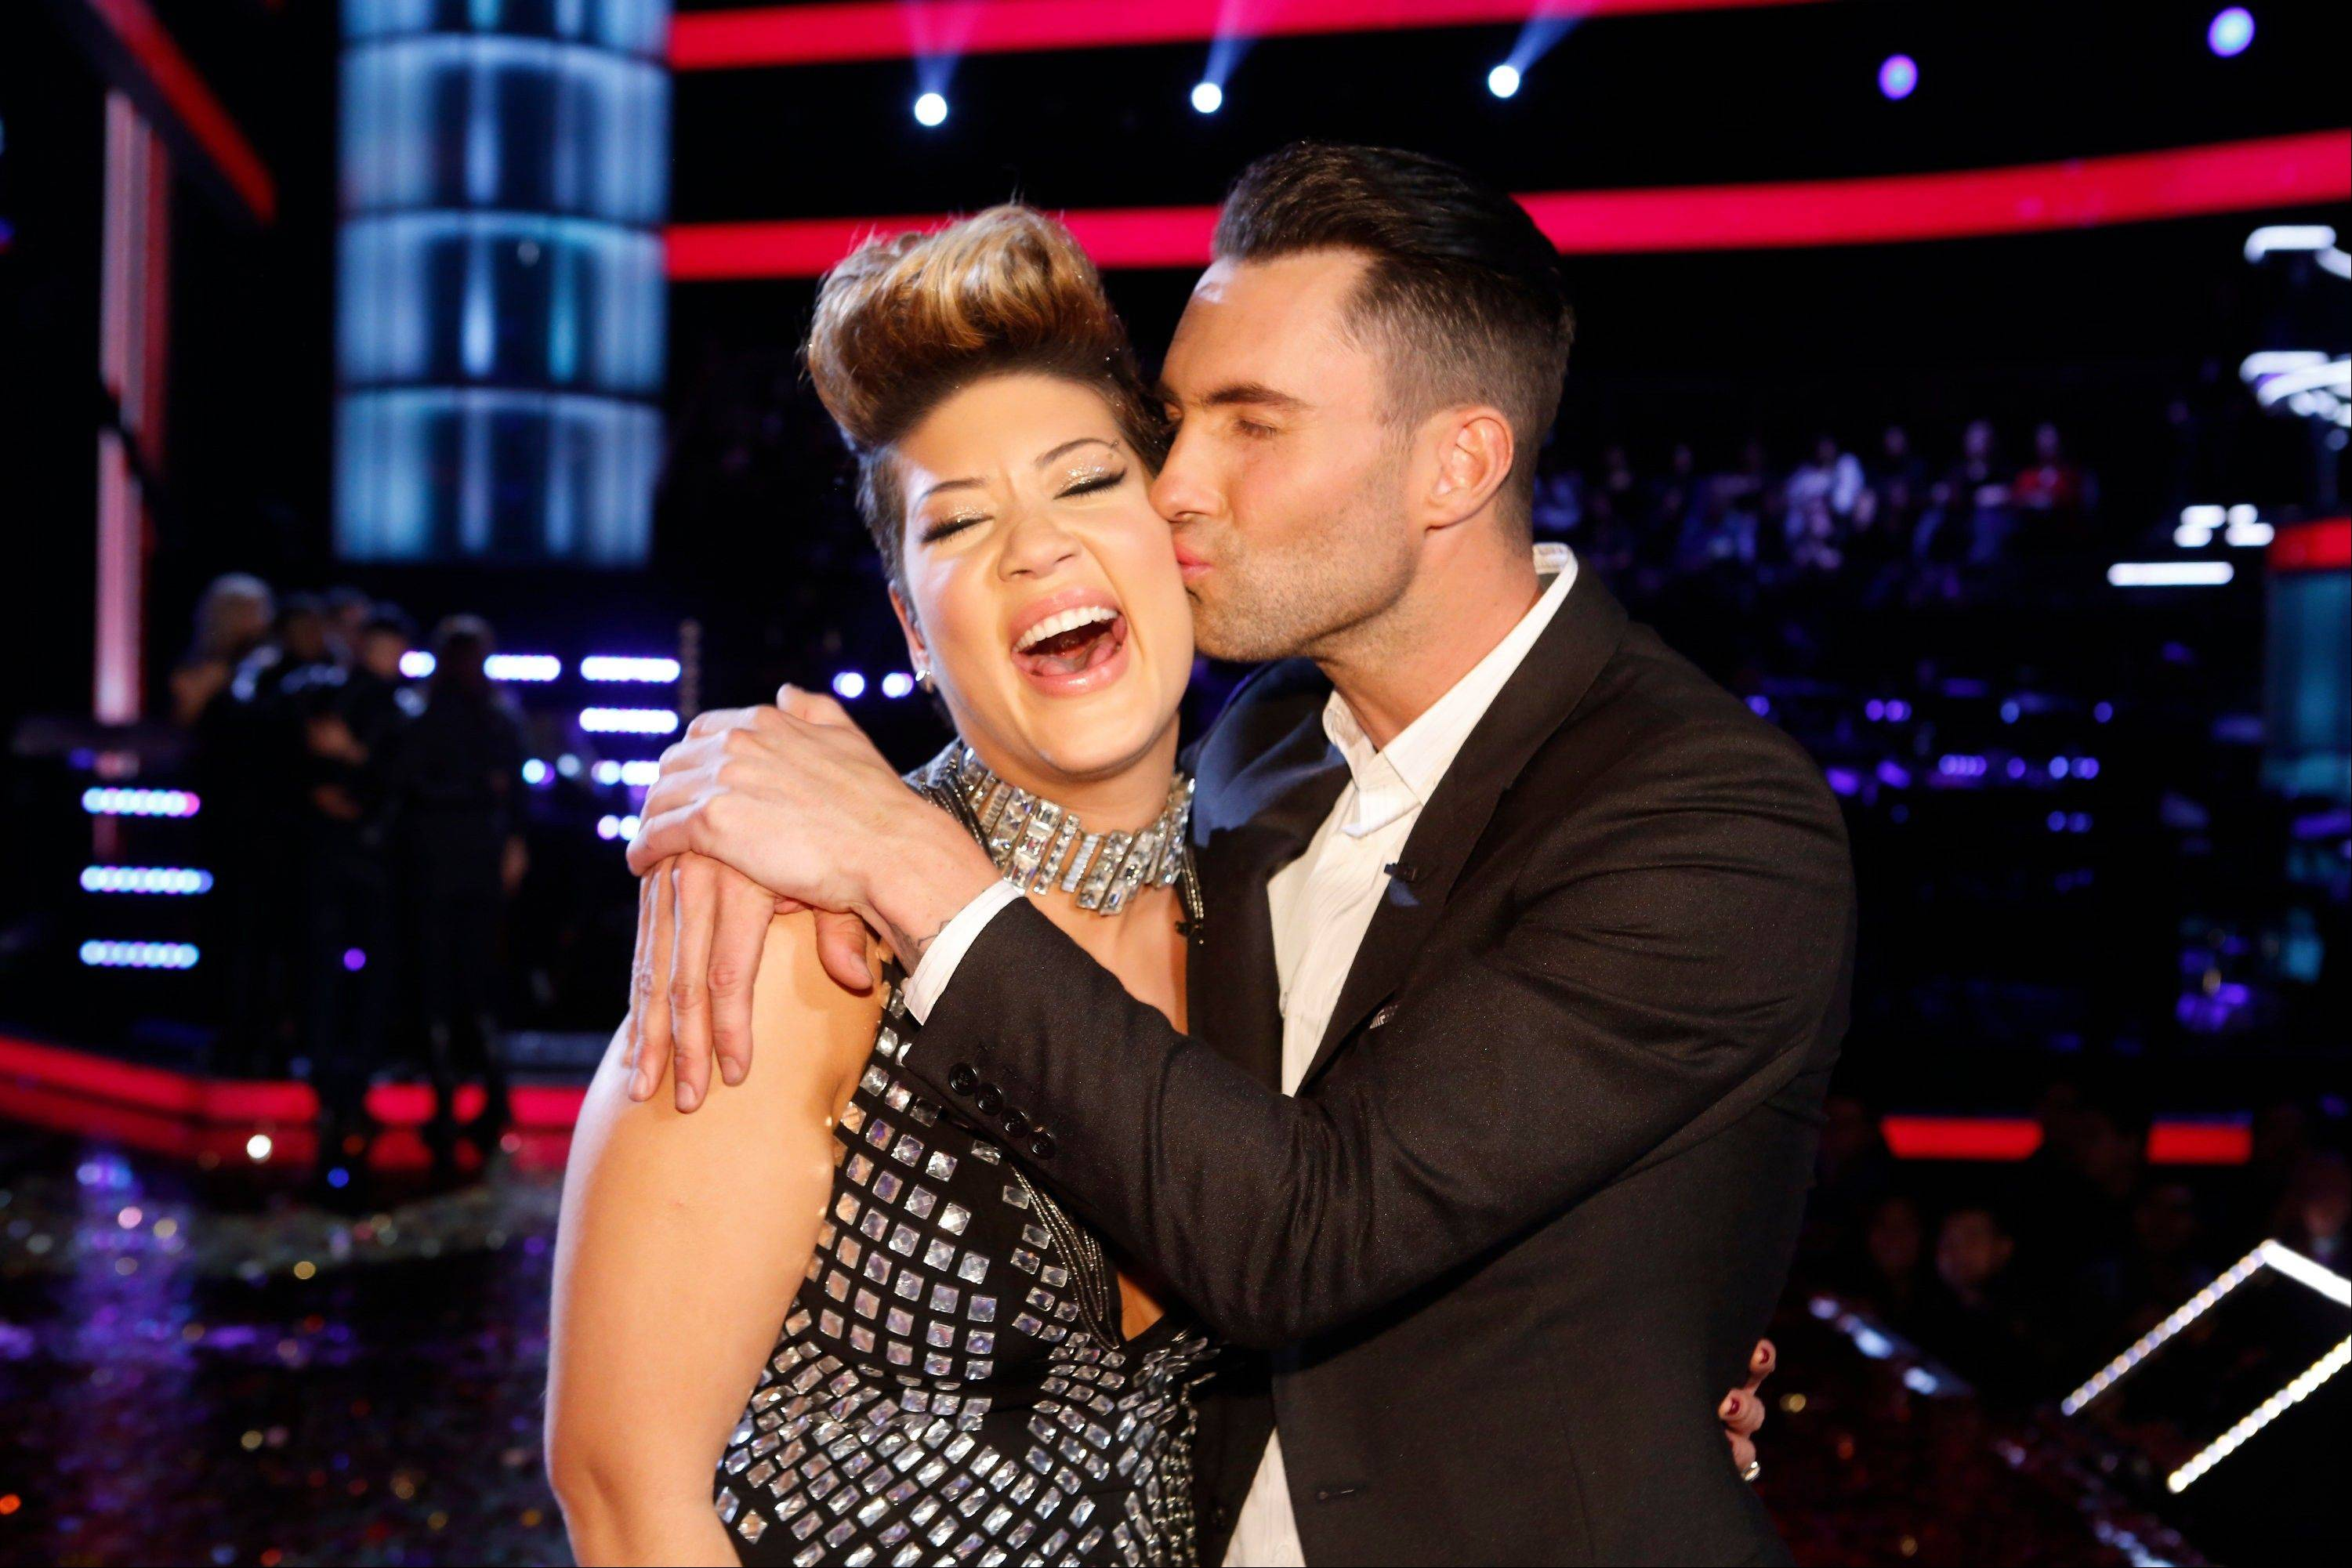 Maroon 5 frontman Adam Levine kisses Tessanne Chin on the cheek after Chin was announced the season five winner of �The Voice� on Tuesday, Dec. 17, 2013, in Los Angeles.